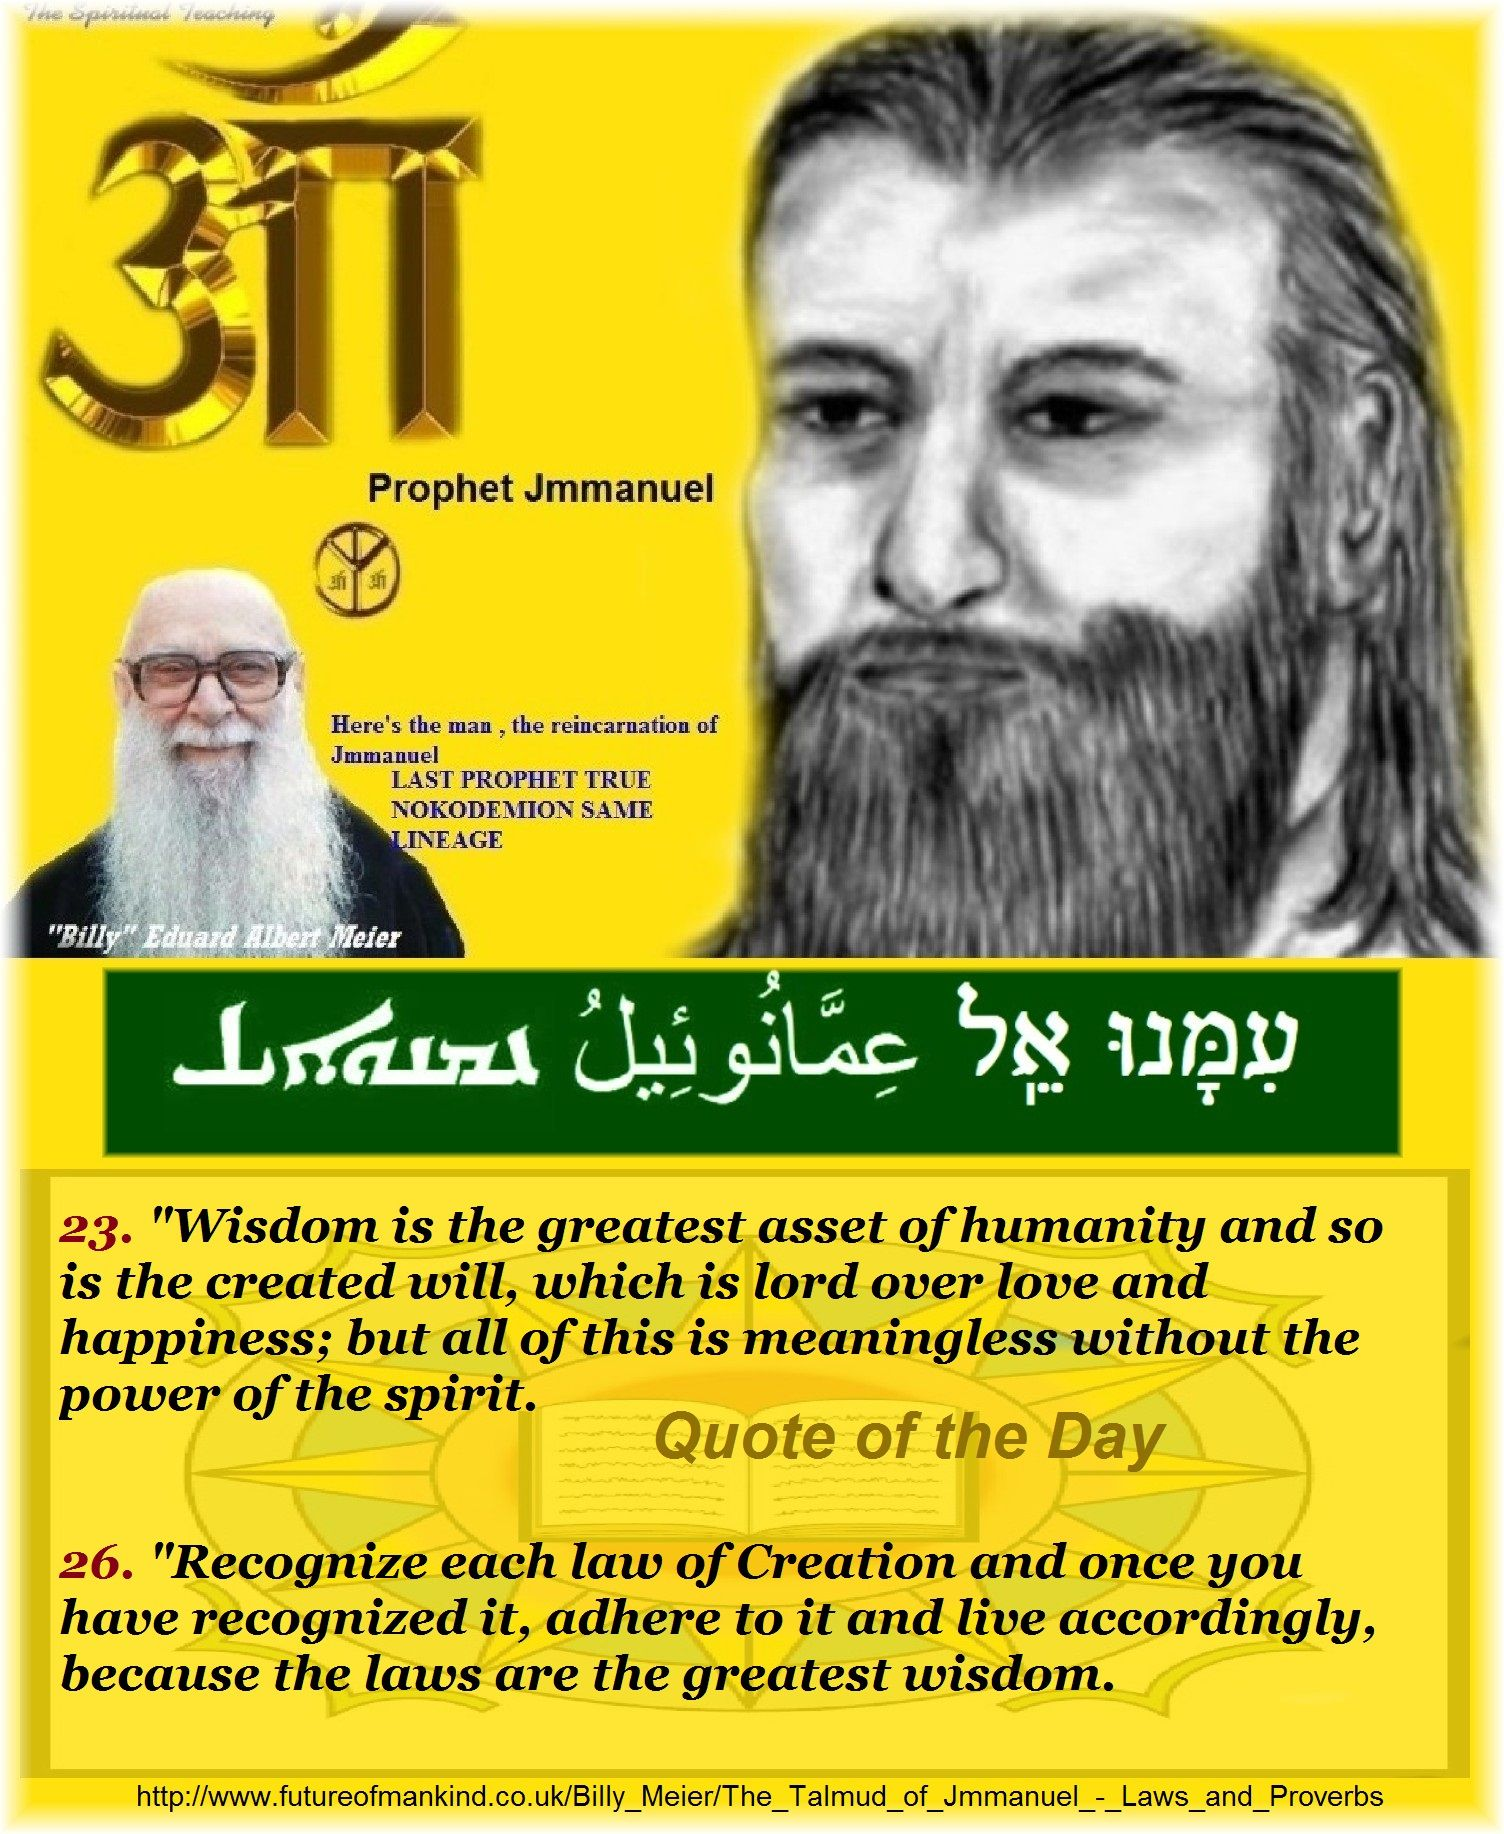 "23. ""Wisdom is the greatest asset of humanity and so is the created will, which is lord over love and happiness; but all of this is meaningless without the power of the spirit. 	  26. ""Recognize each law of Creation and once you have recognized it, adhere to it and live accordingly, because the laws are the greatest wisdom.   http://www.futureofmankind.co.uk/Billy_Meier/The_Talmud_of_Jmmanuel_-_Laws_and_Proverbs   Quote of the Day   Ban-Srut Beam  - Last Prophet - Lineage of Nokodemion"